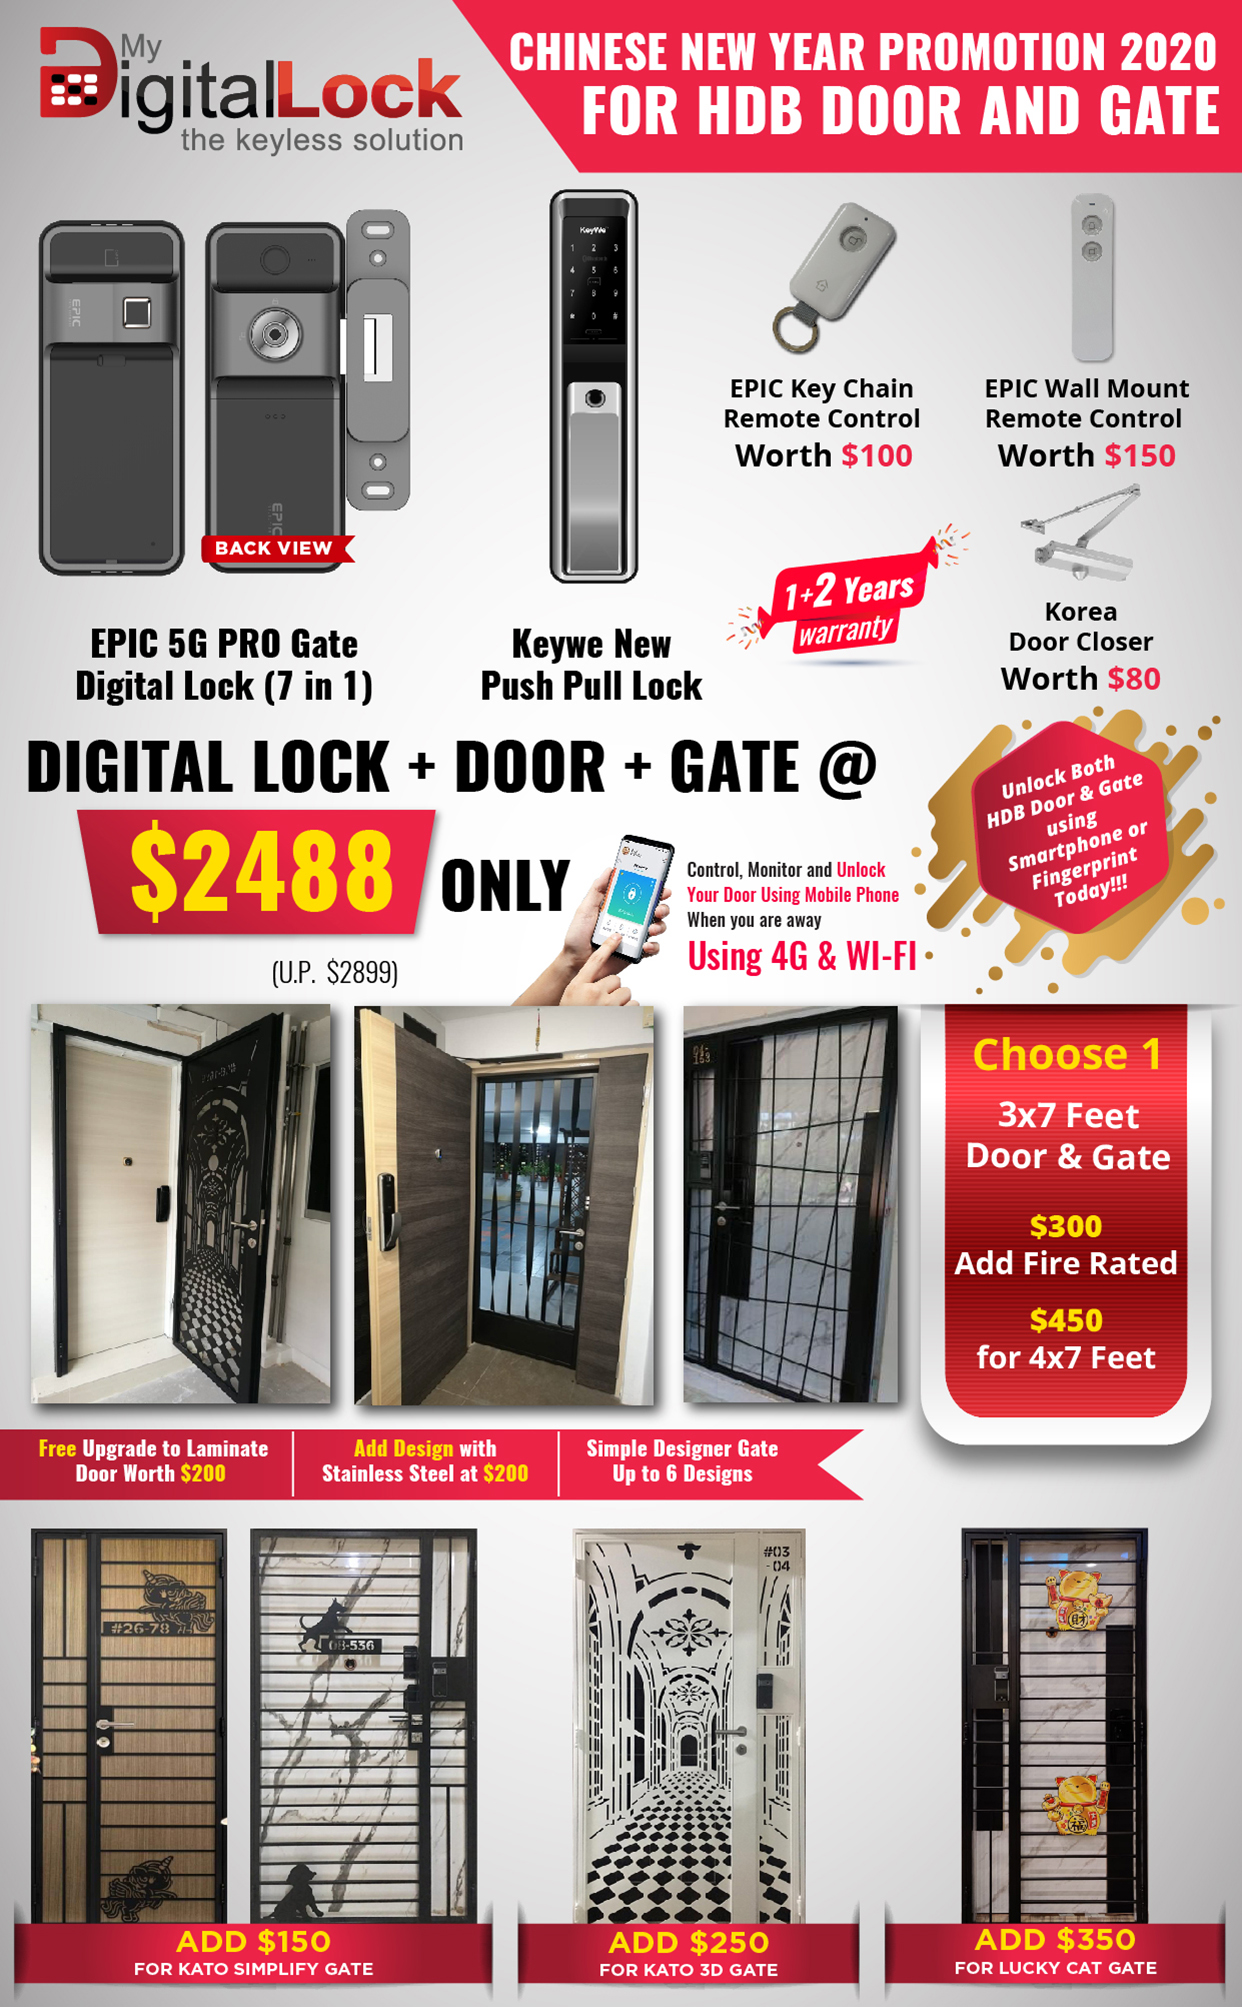 EPIC-5G-Pro-Gate-DigitalLock